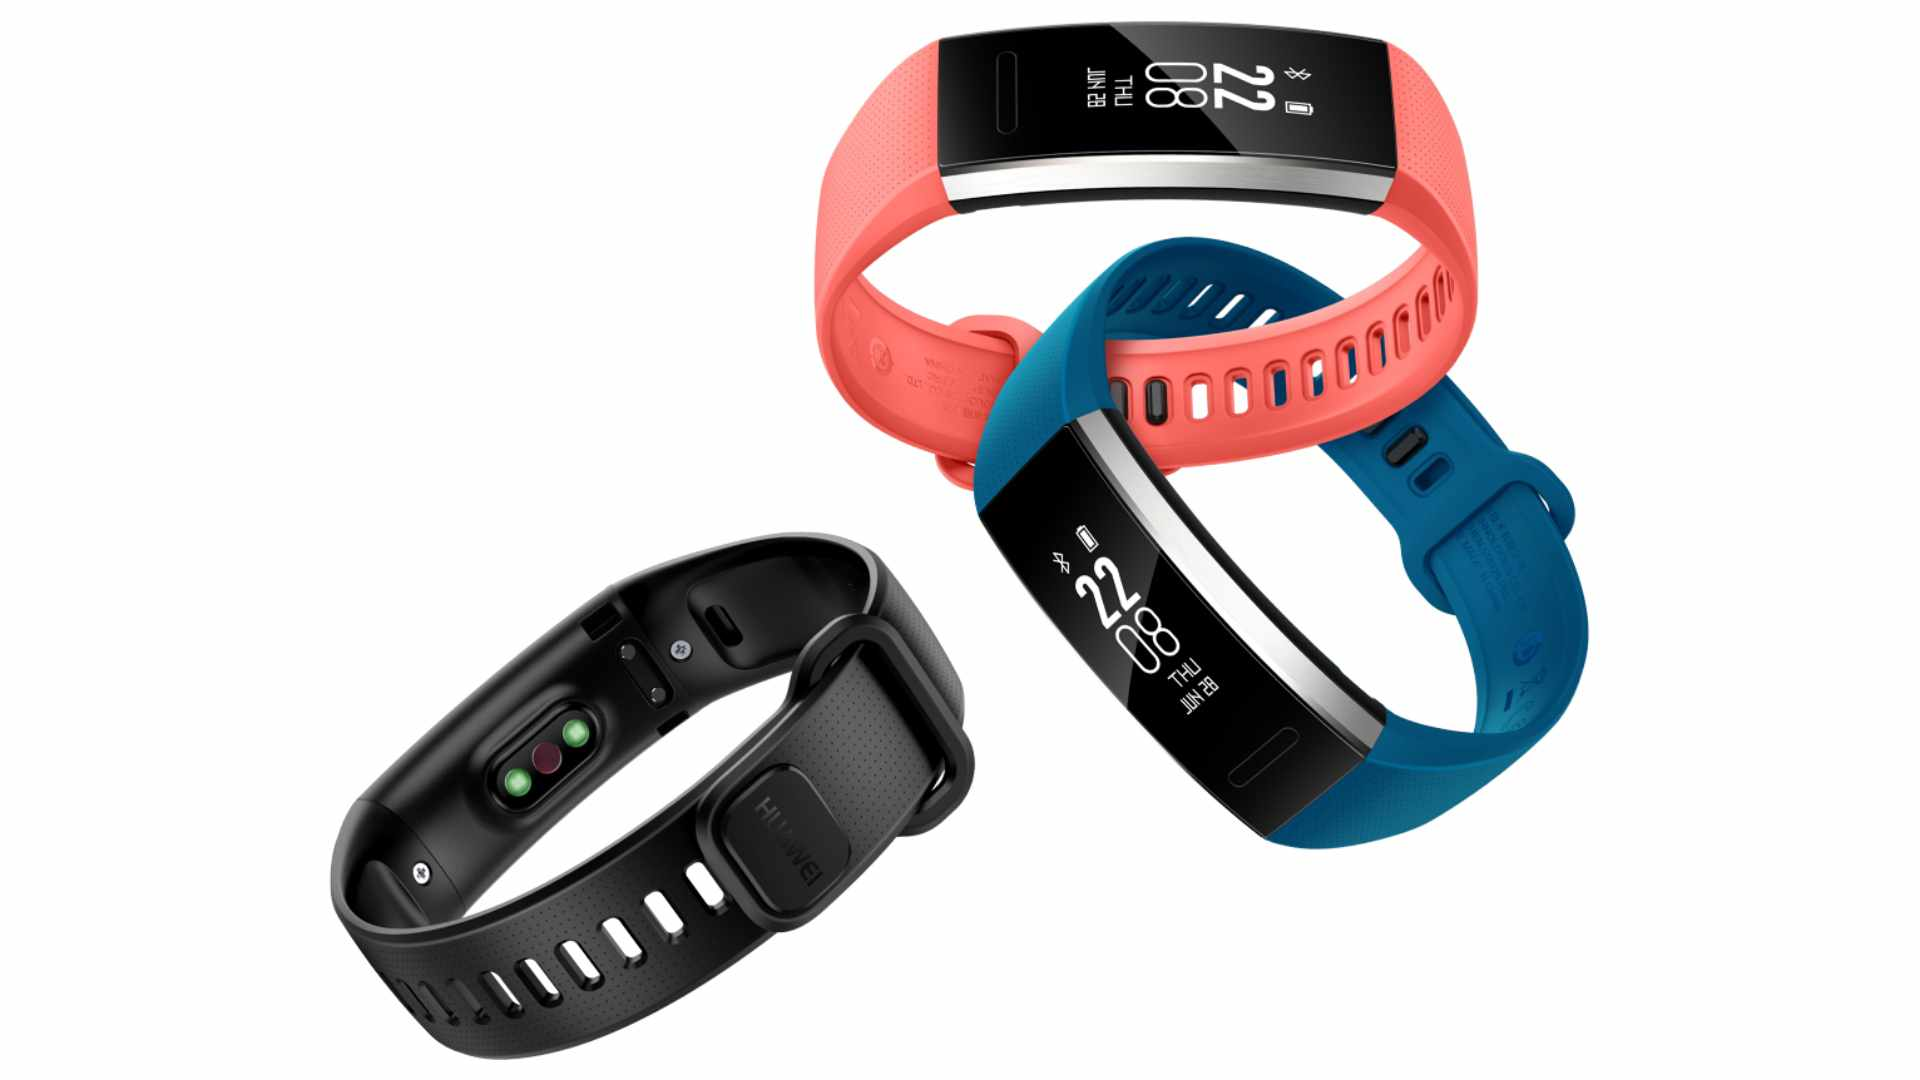 The new Band 2 Pro from Huawei offers features designed to help the athlete-in-training